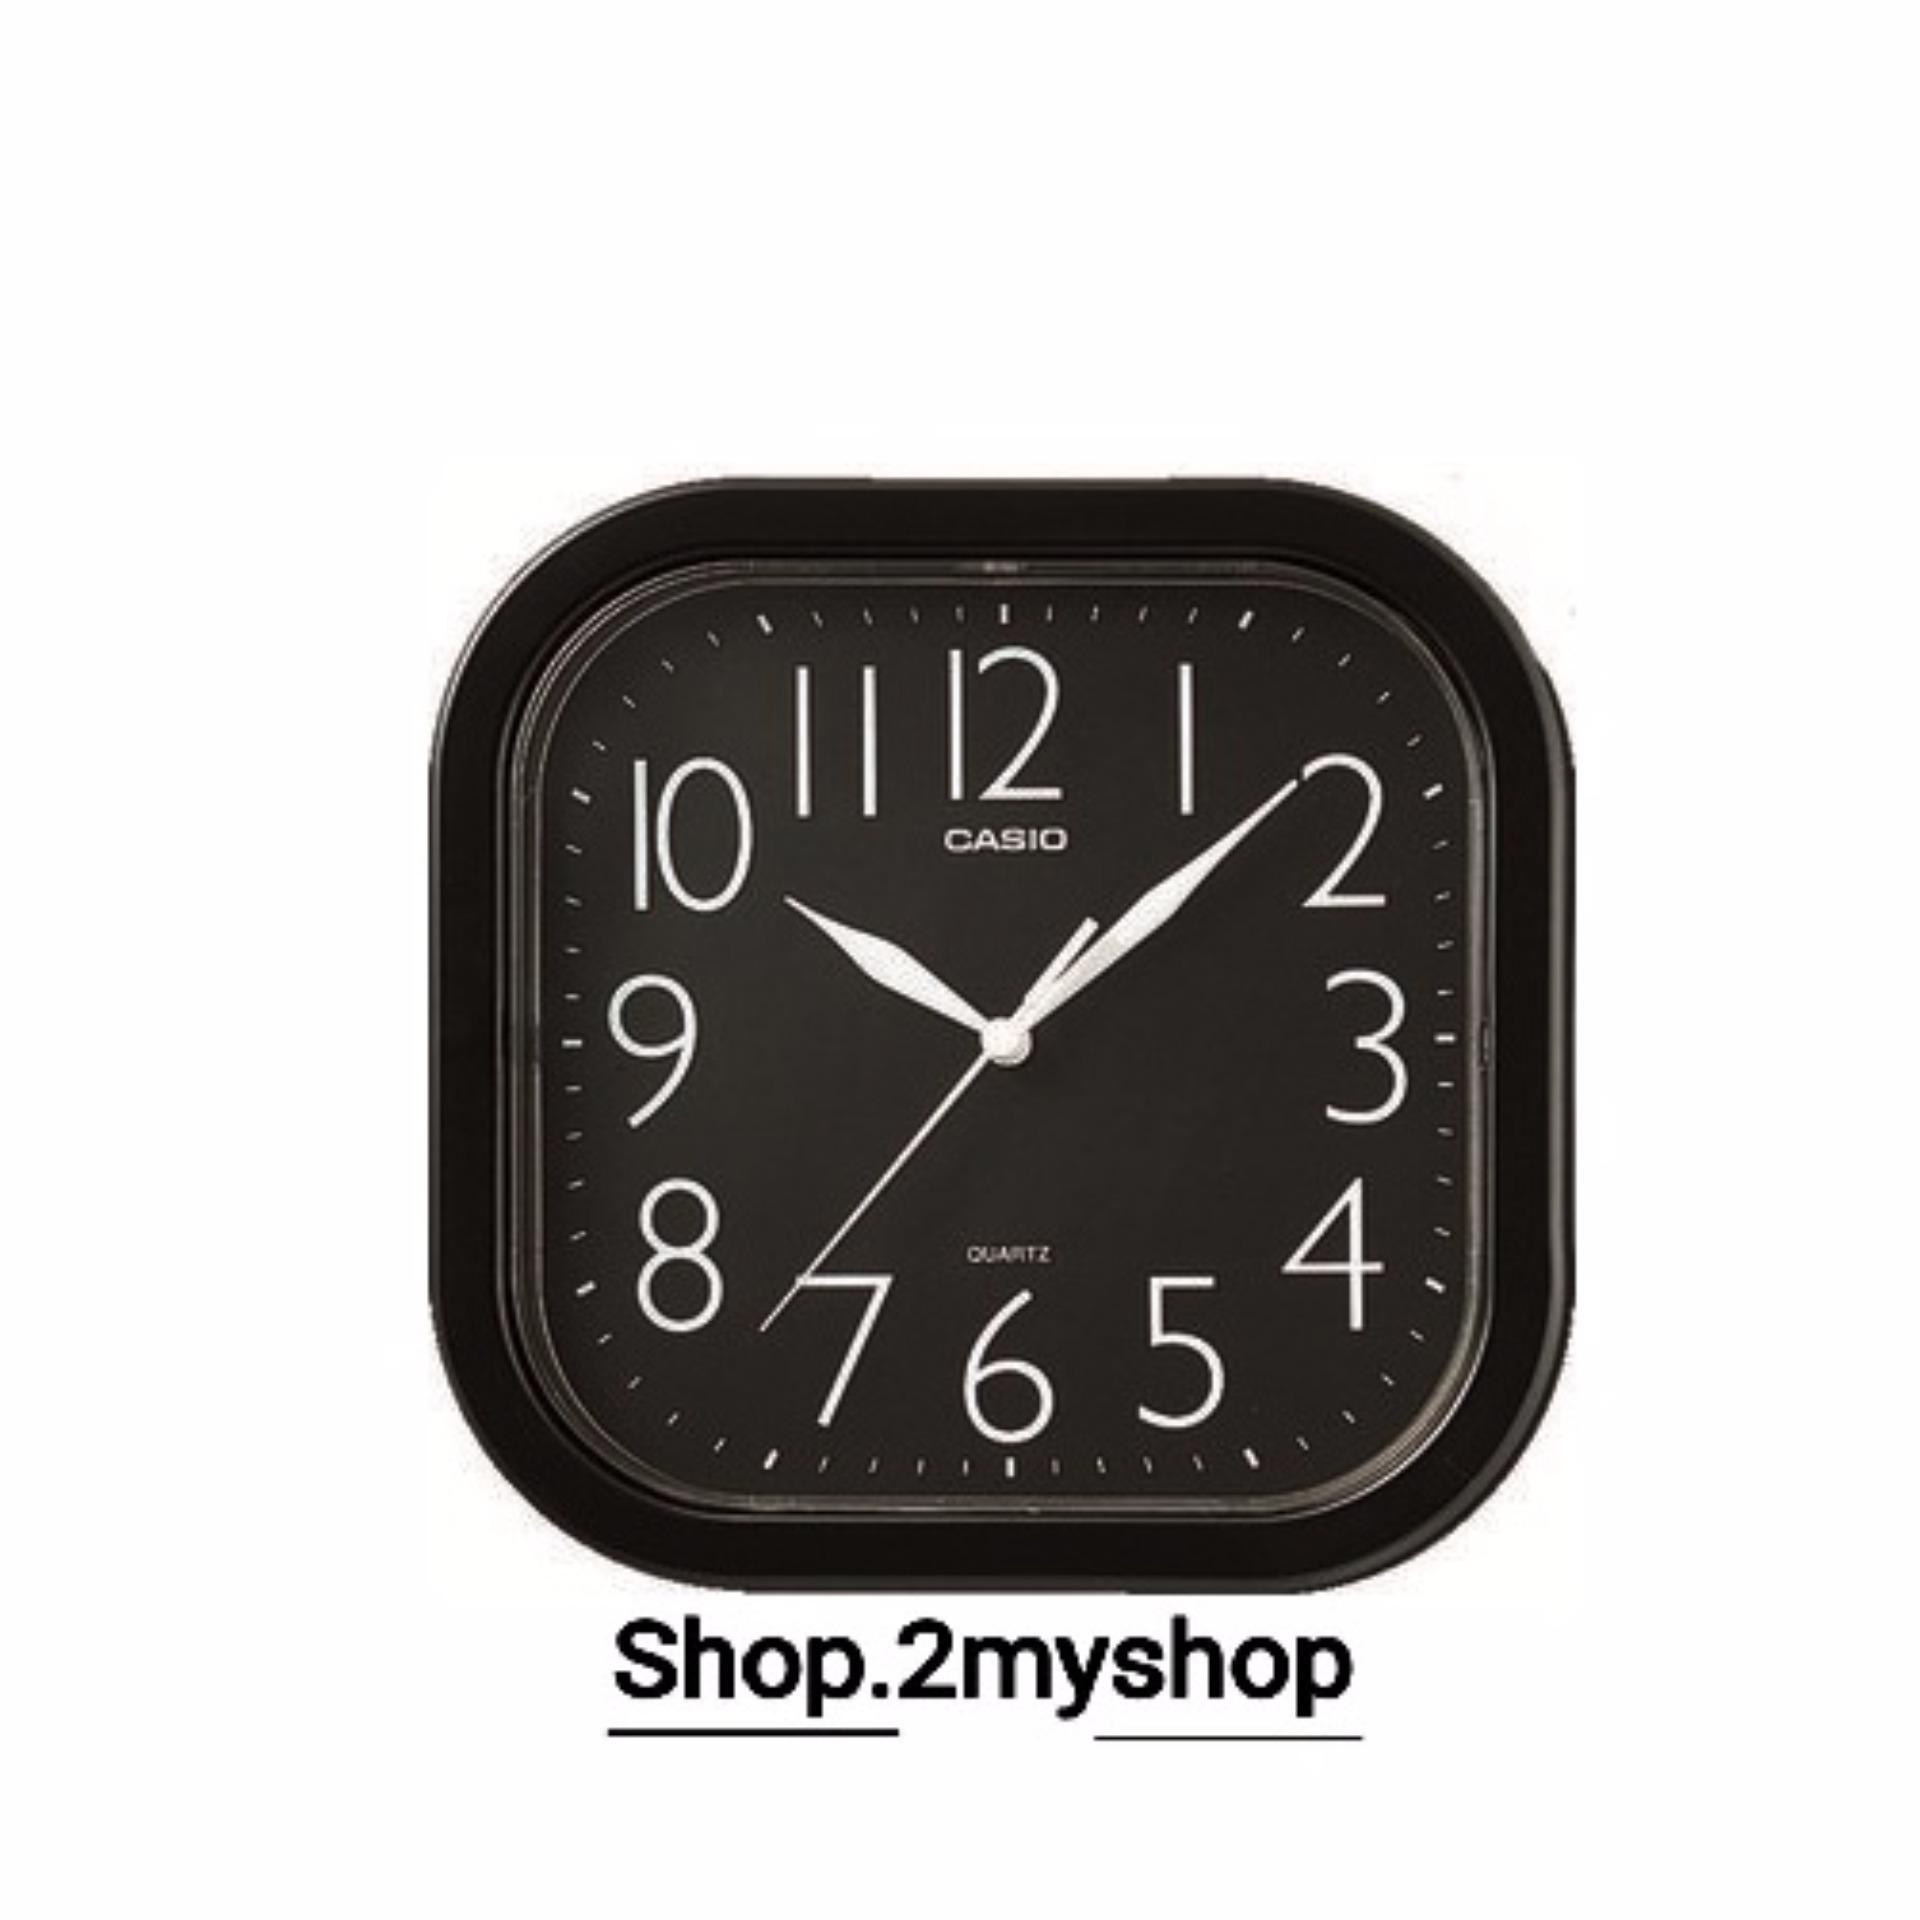 Casio wall clocks image collections home wall decoration ideas casio simple wall clock iq 02 lazada singapore amipublicfo image collections amipublicfo Choice Image